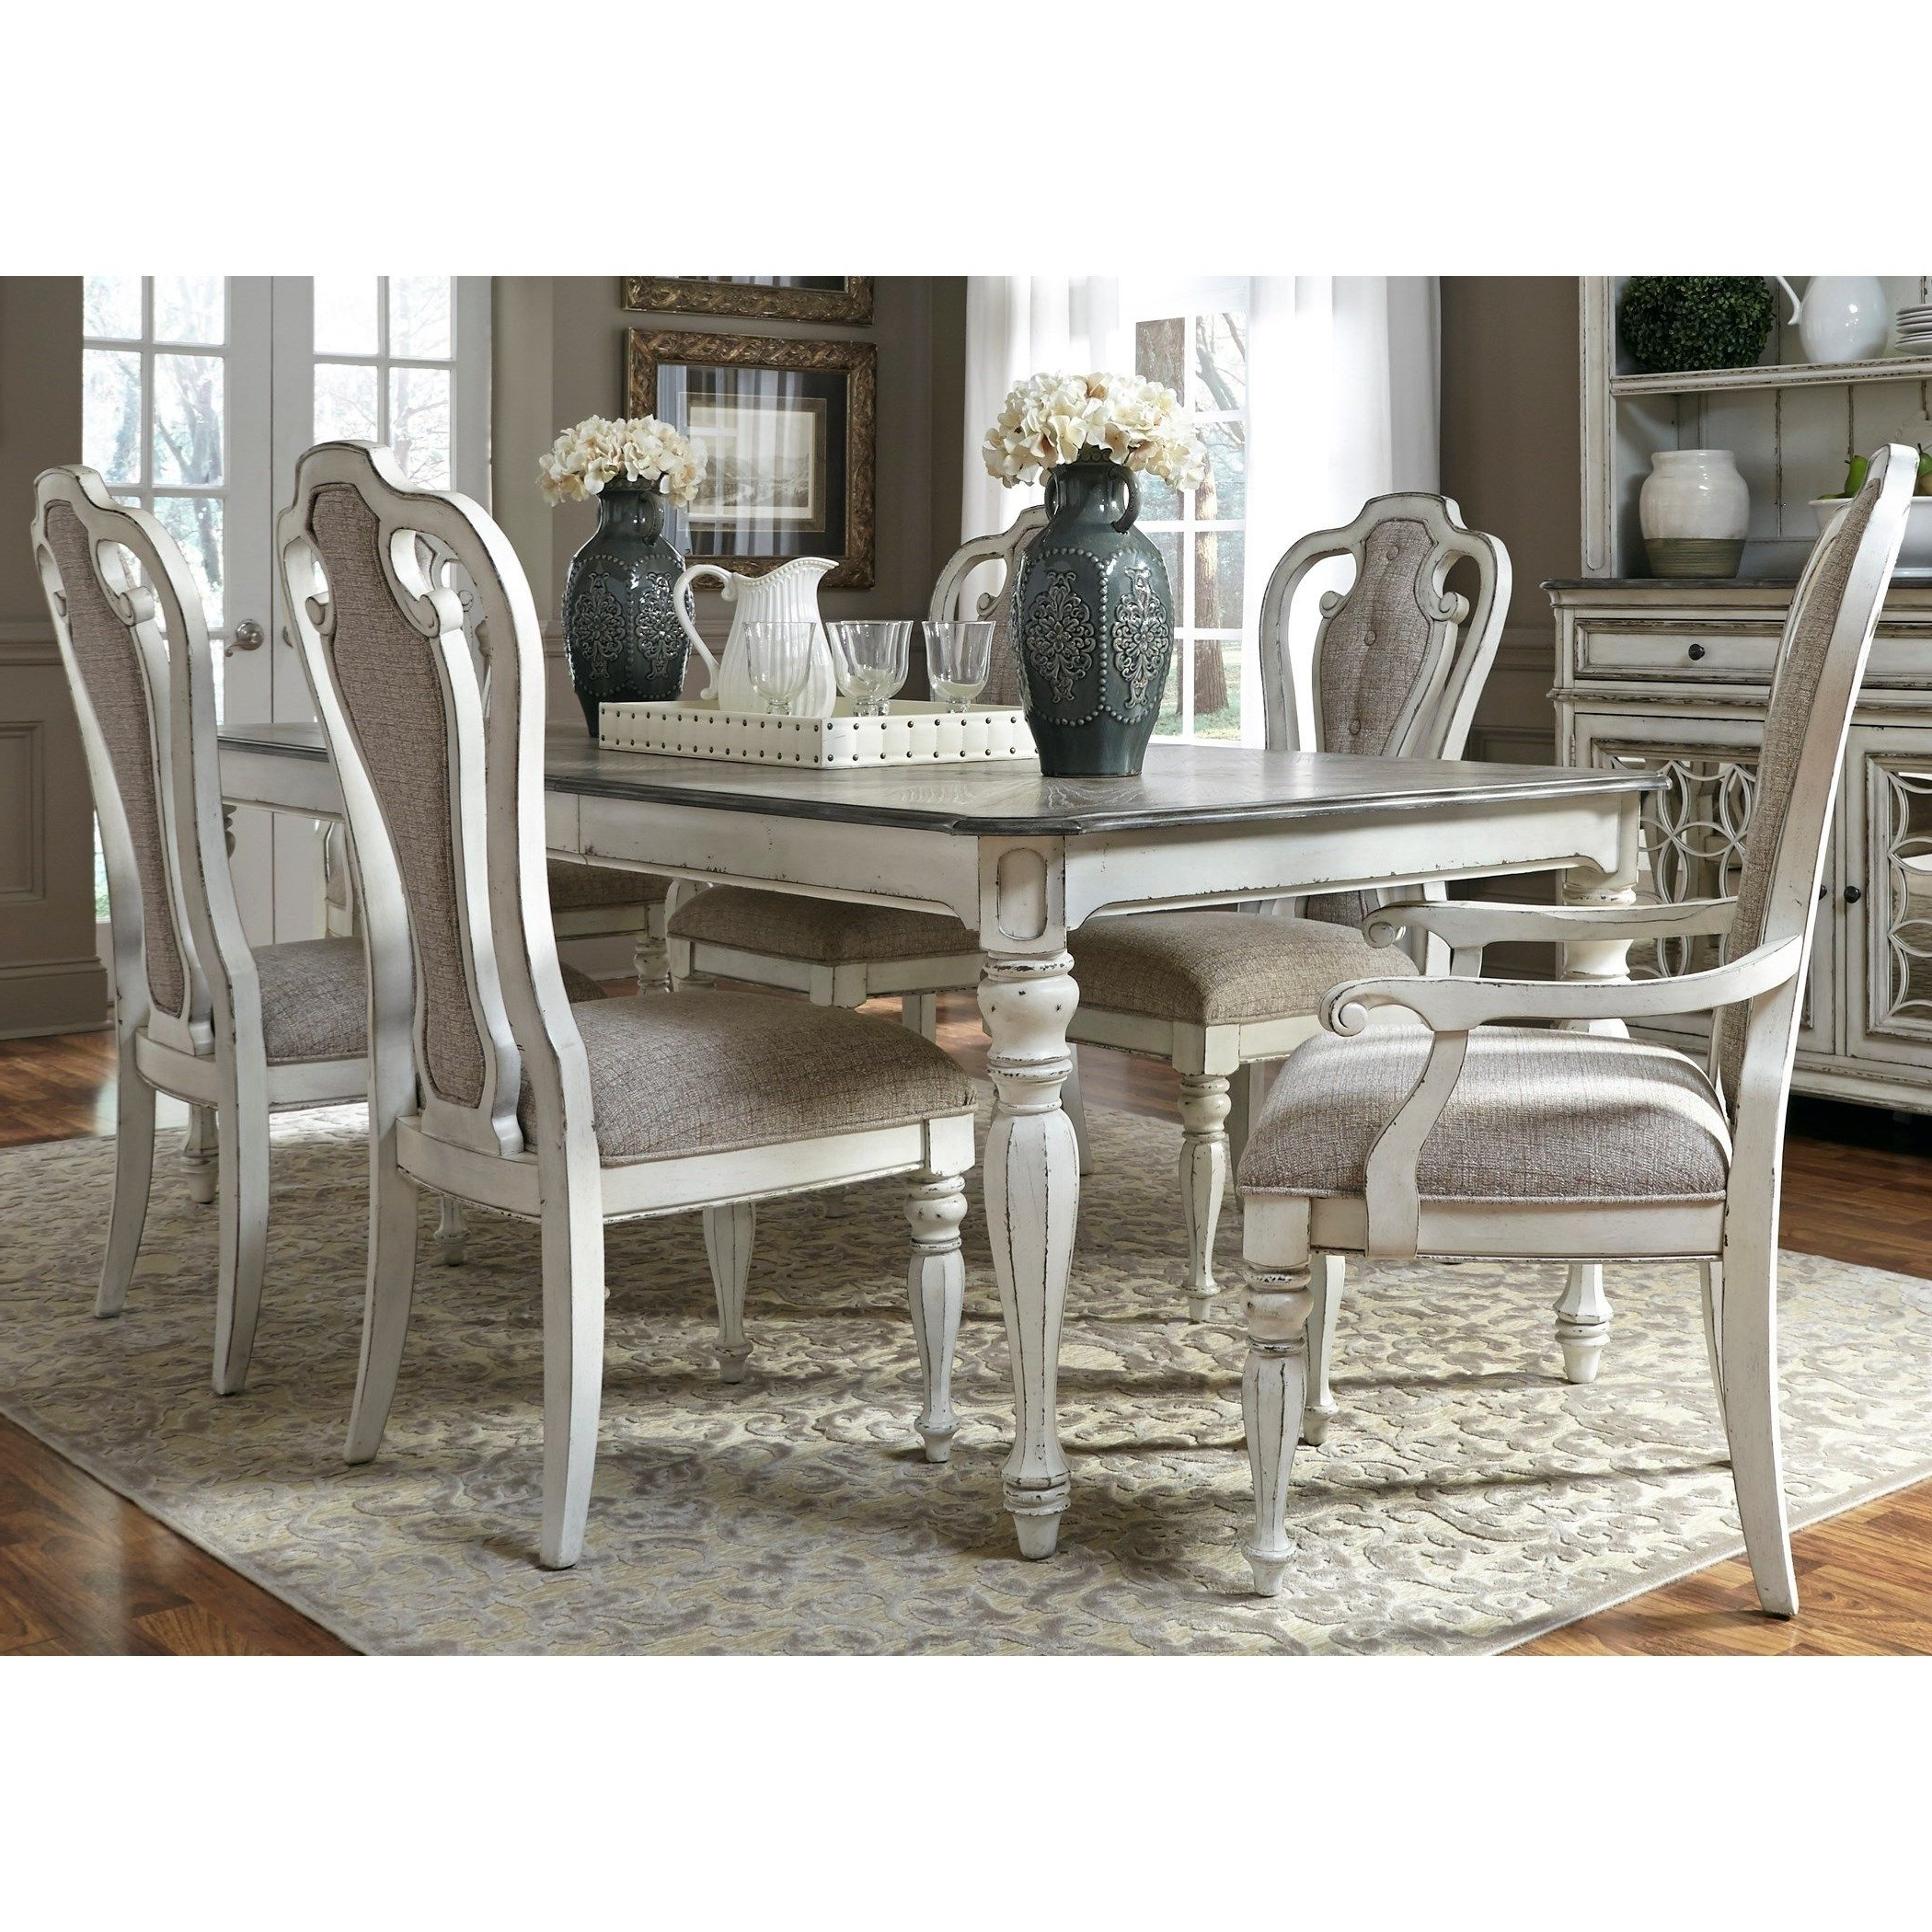 Crawford 7 Piece Rectangle Dining Sets In Recent Magnolia Manor Dining 7 Piece Rectangular Table Set With Leaf (View 5 of 25)